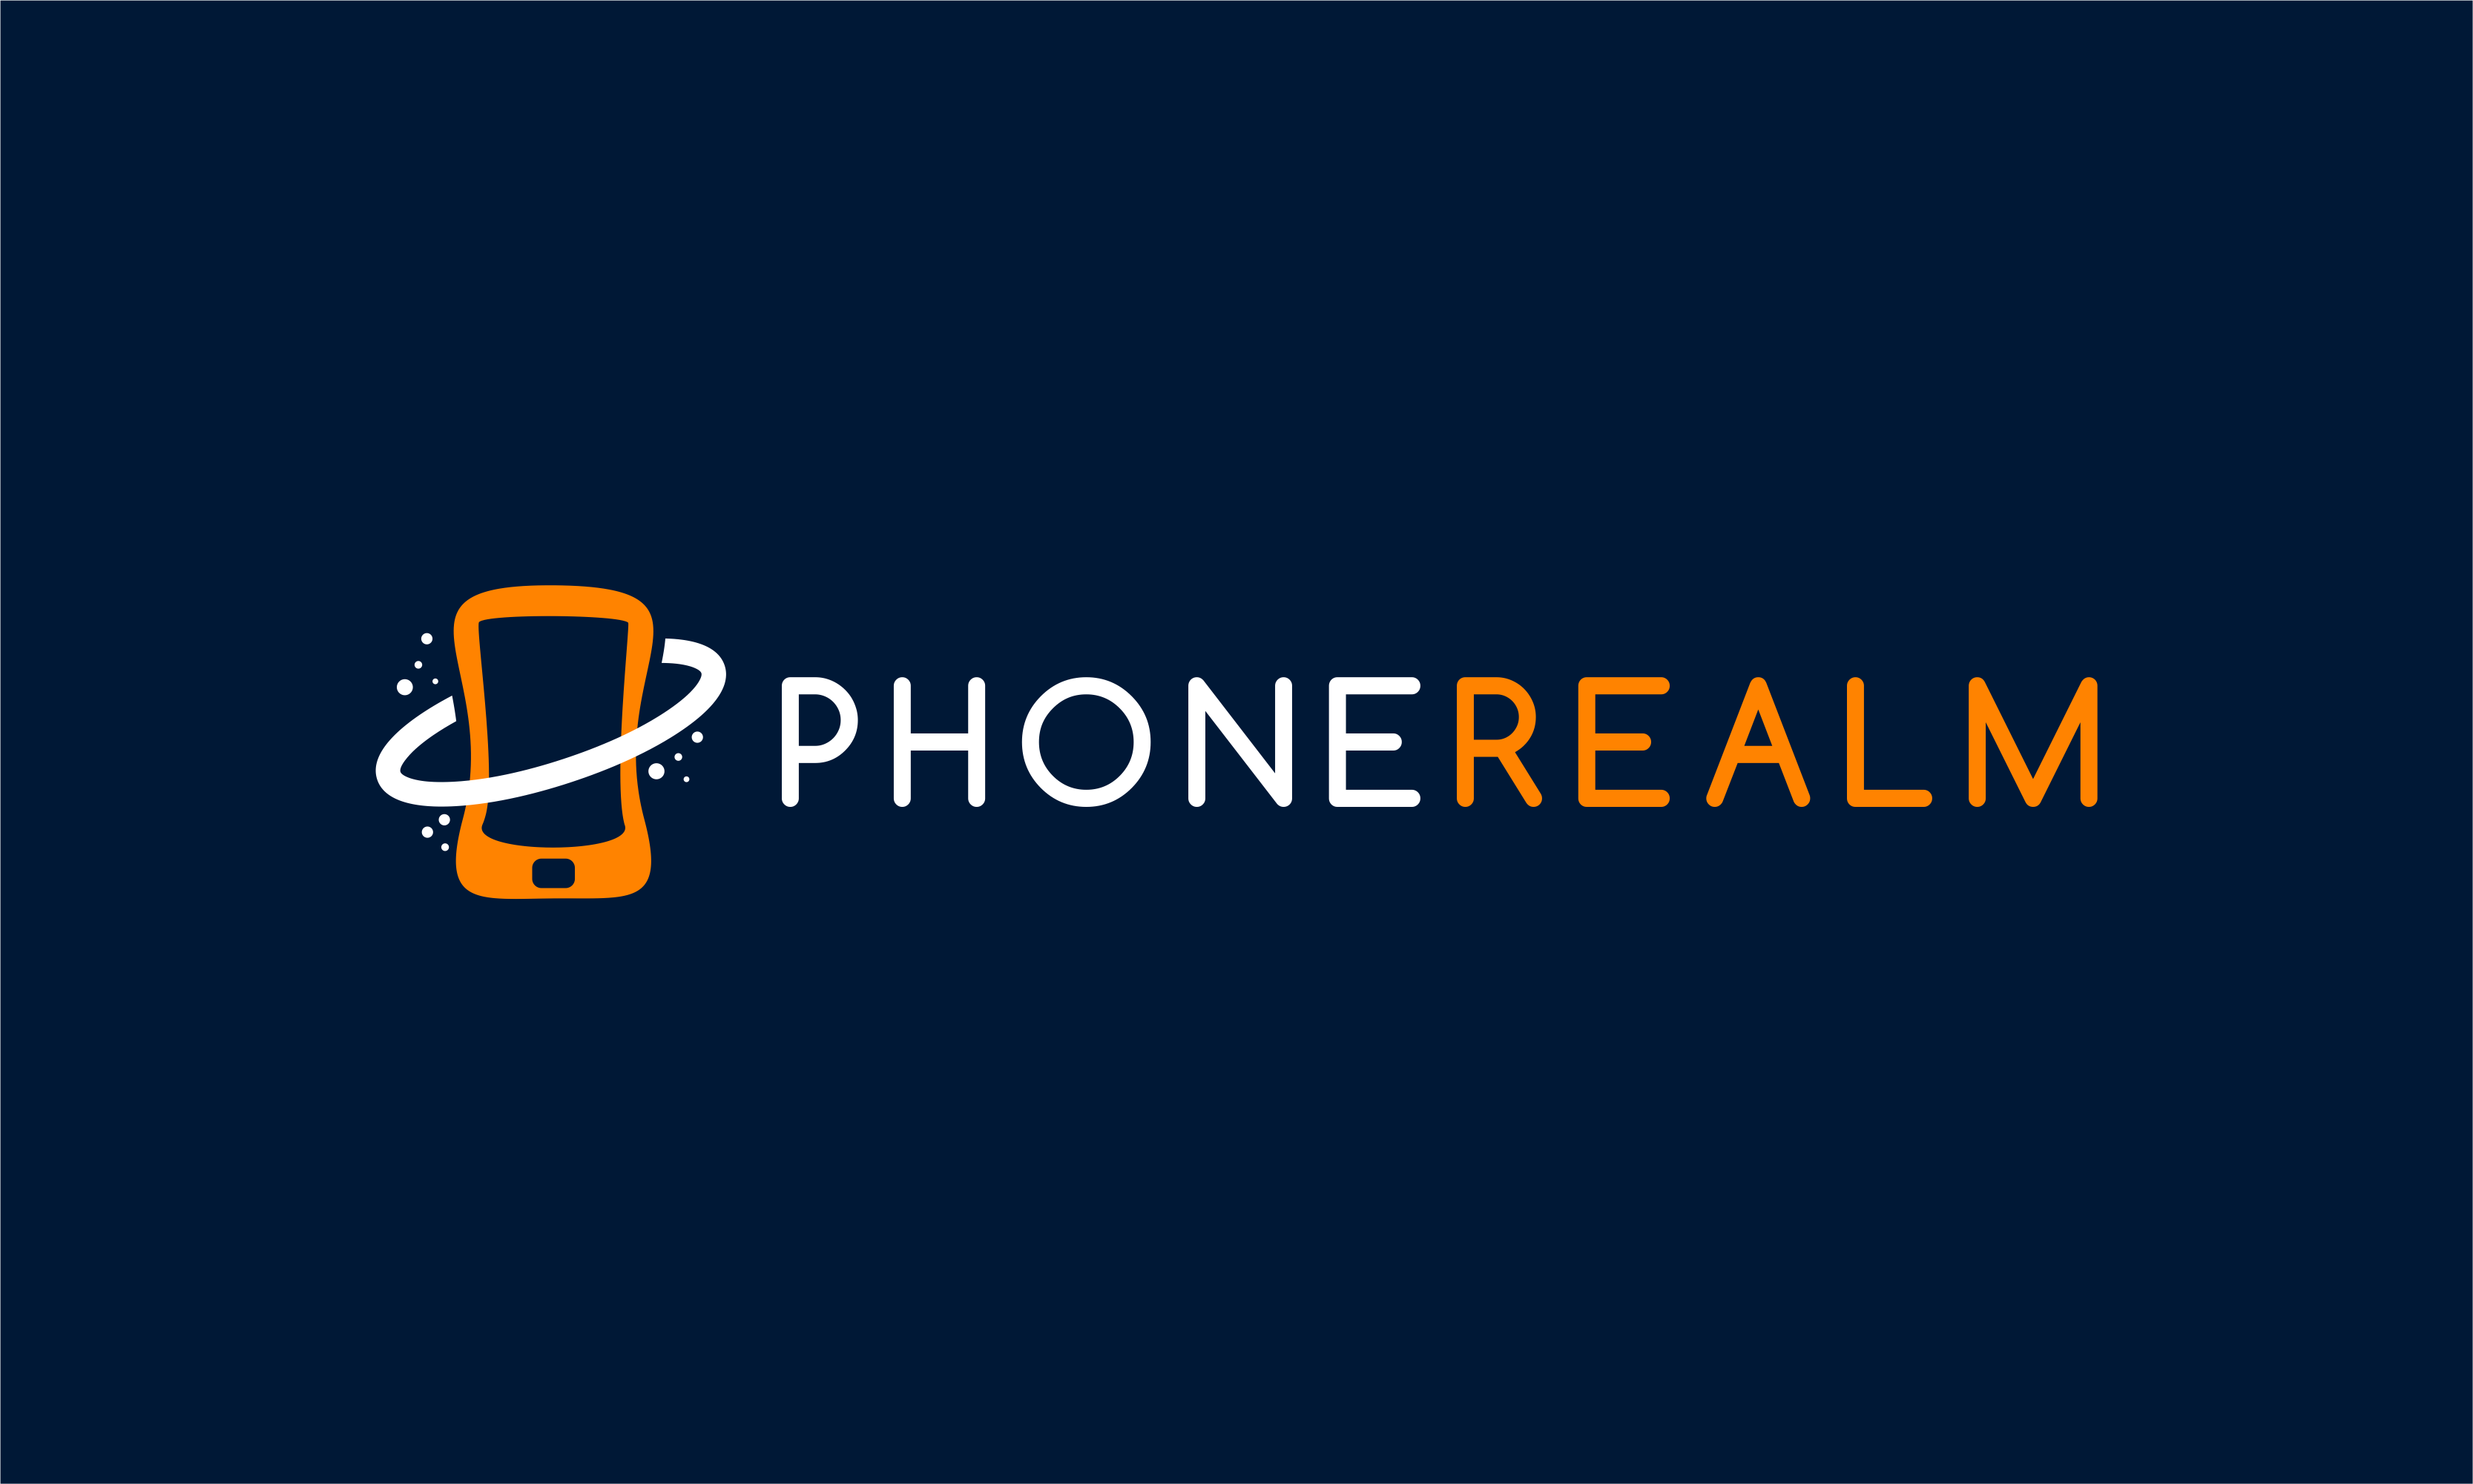 Phonerealm - Telecommunications business name for sale